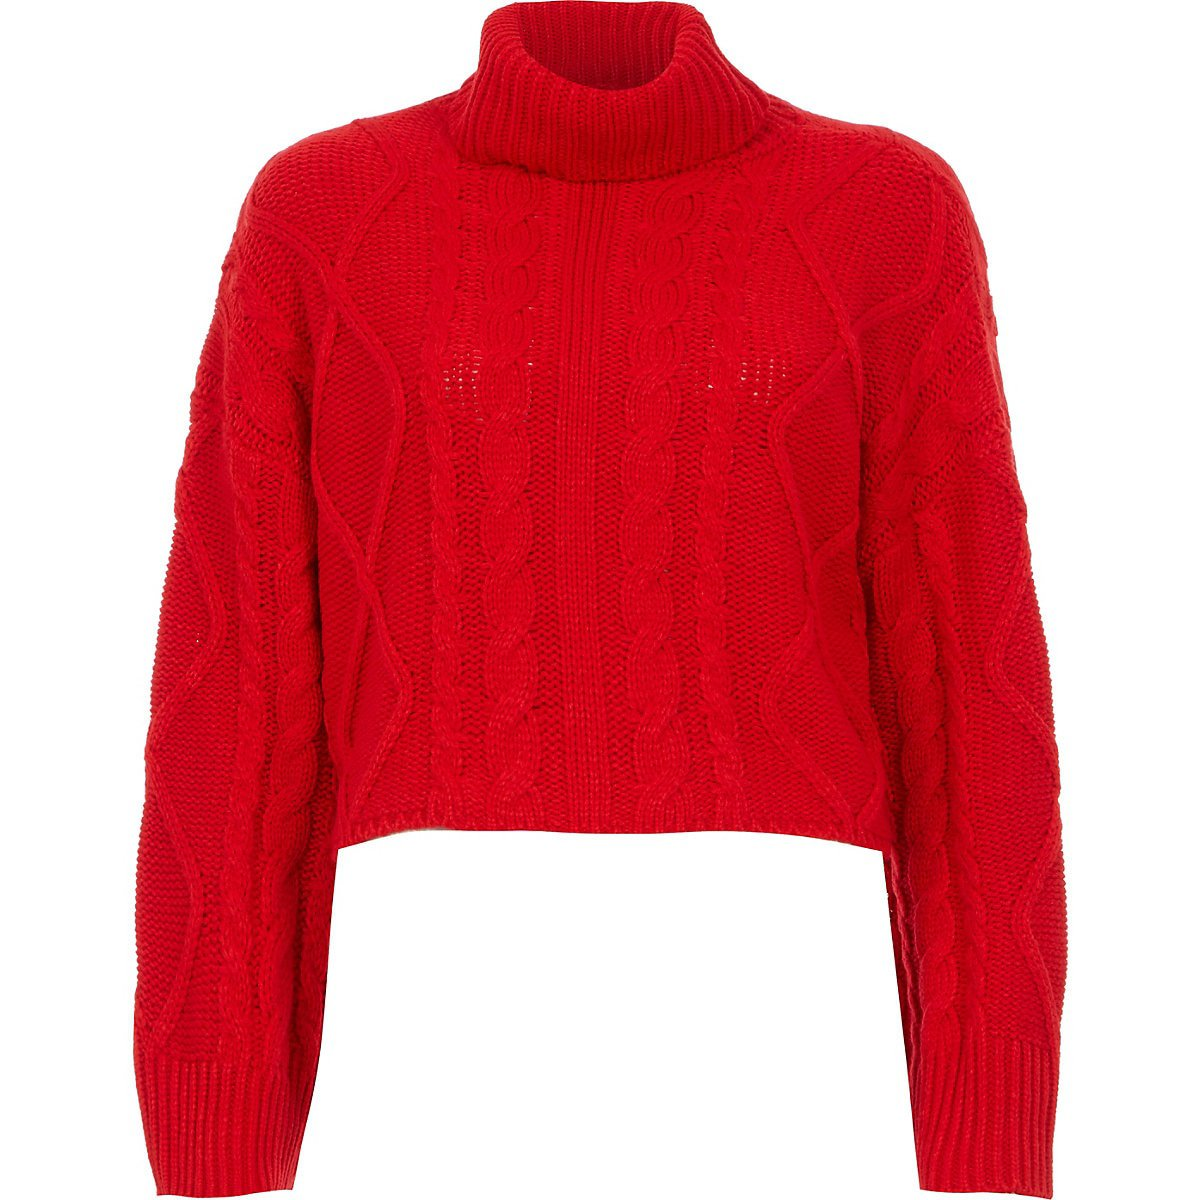 Red cable knitted roll neck crop jumper | River Island